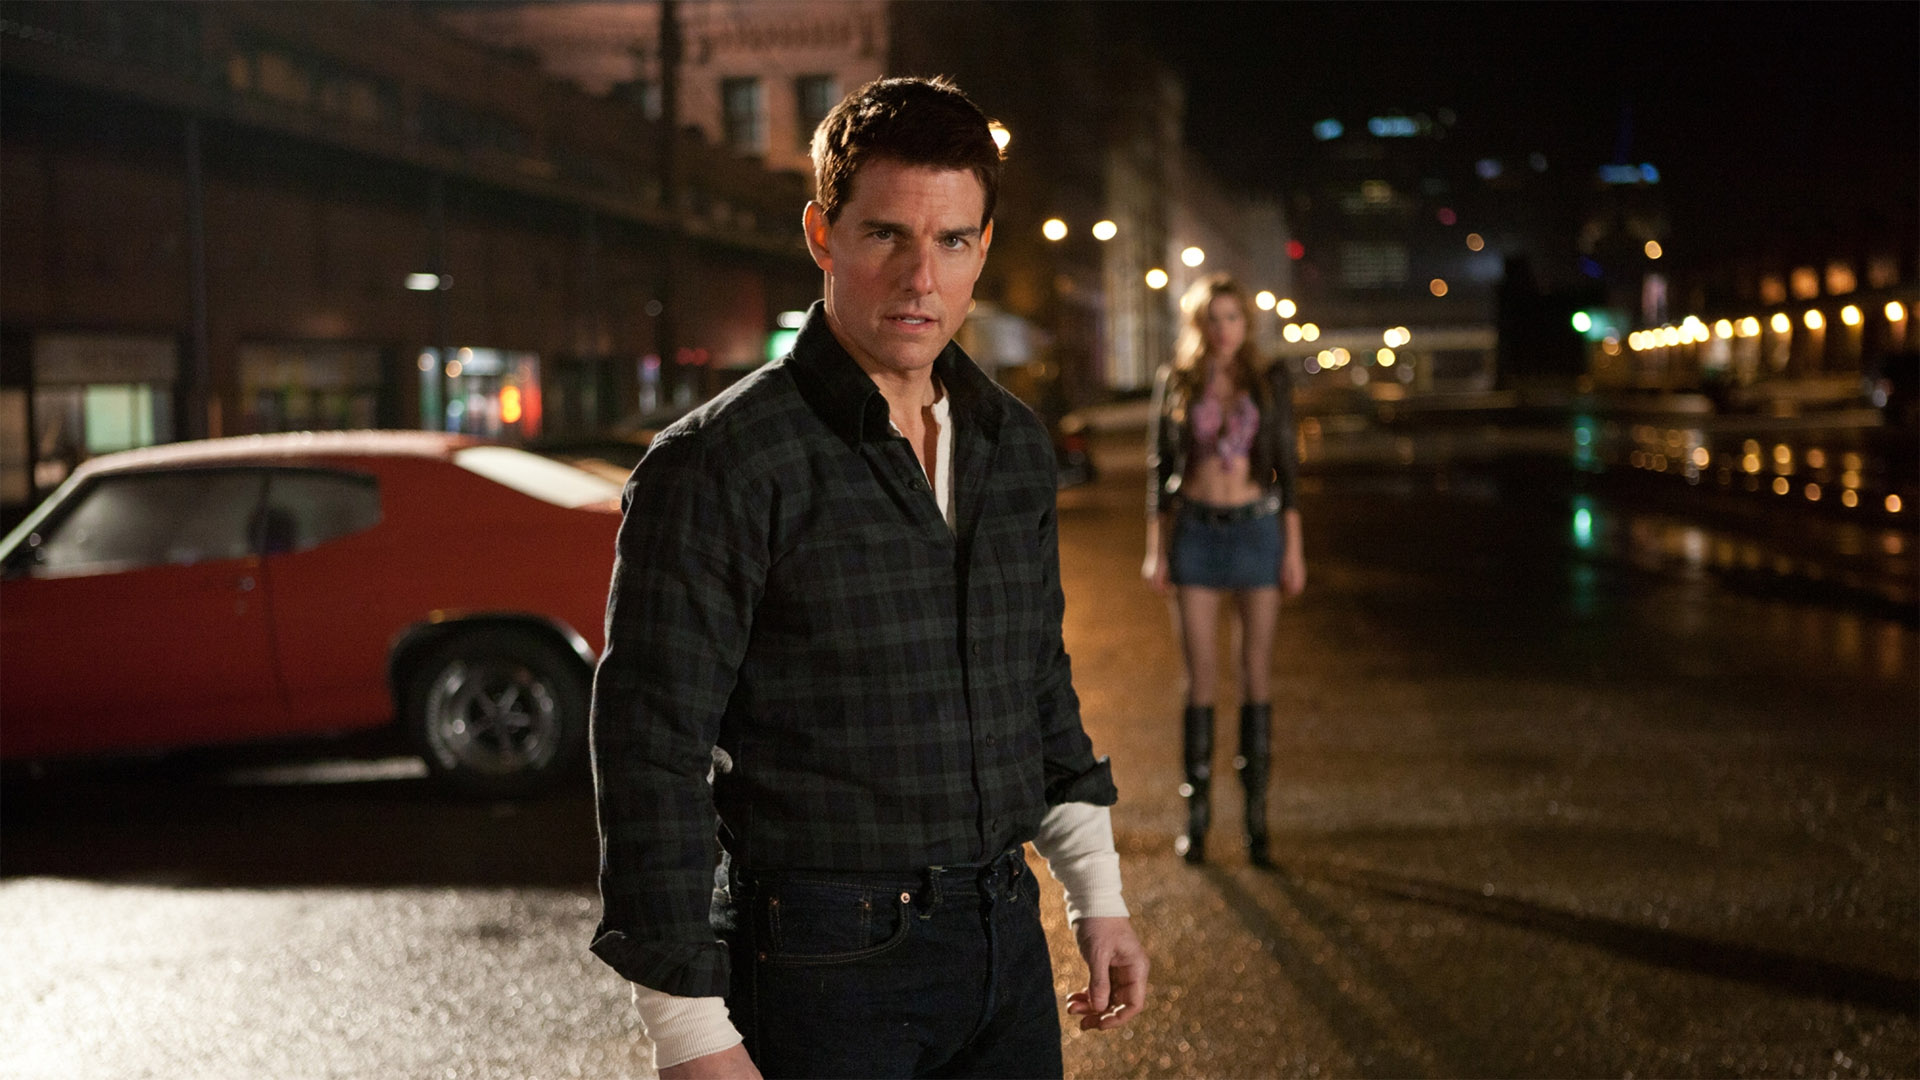 Jack Reacher: Never Go Back Wallpapers hd